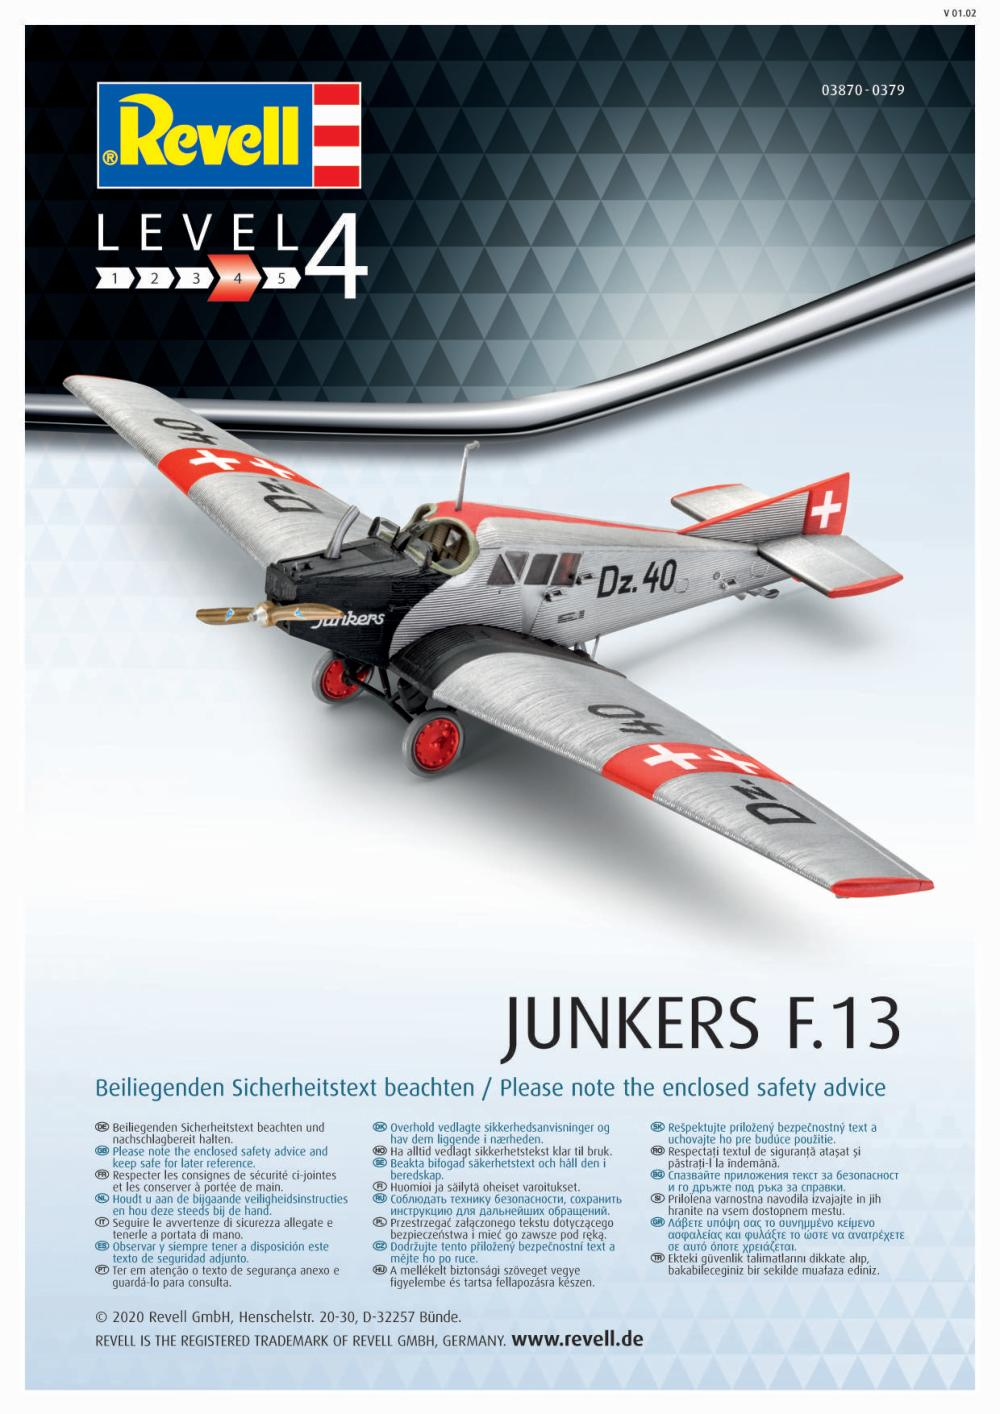 Revell-03870-Junkers-F.13-Bauanleitung1 Junkers F 13 in 1:72 von Revell # 03870